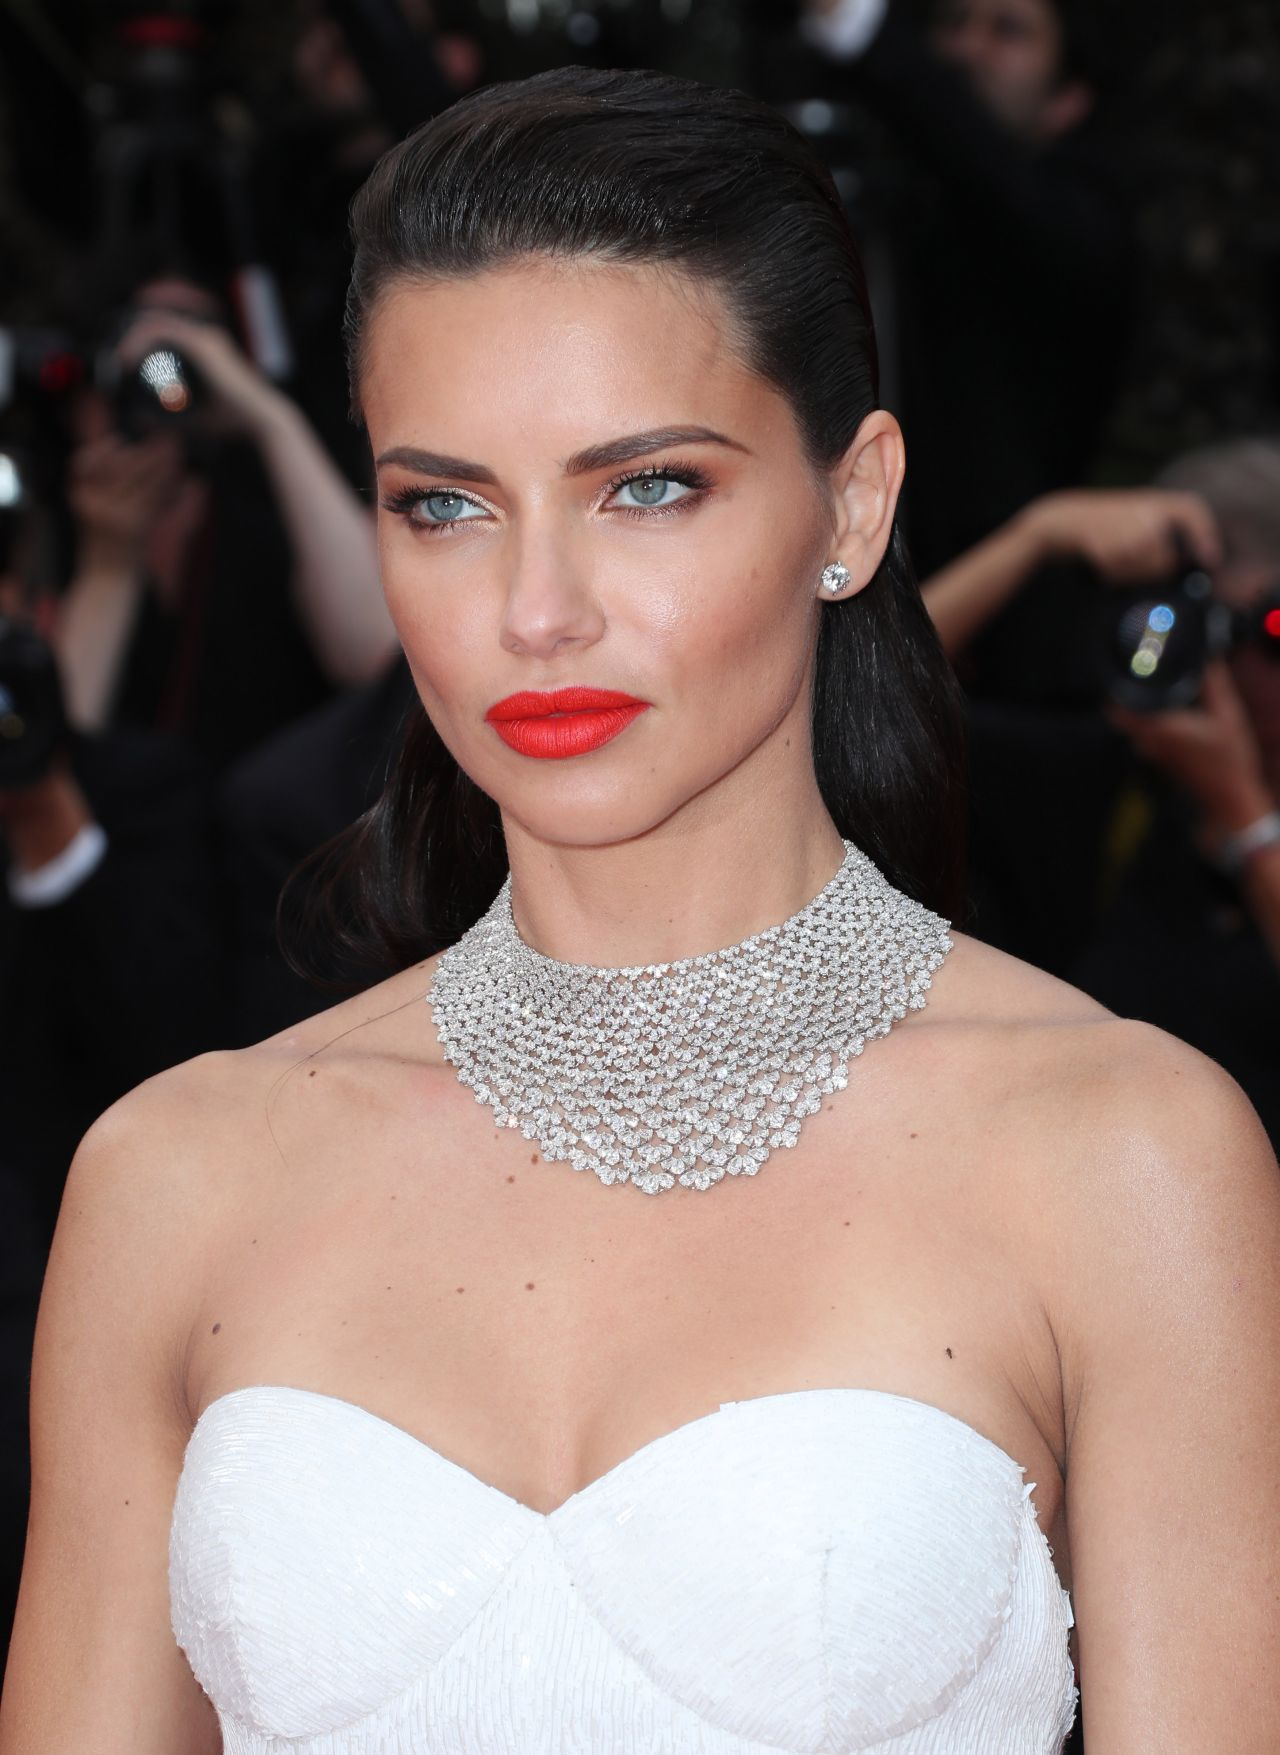 Adriana Lima at Chopard Space Party in Cannes, France 05